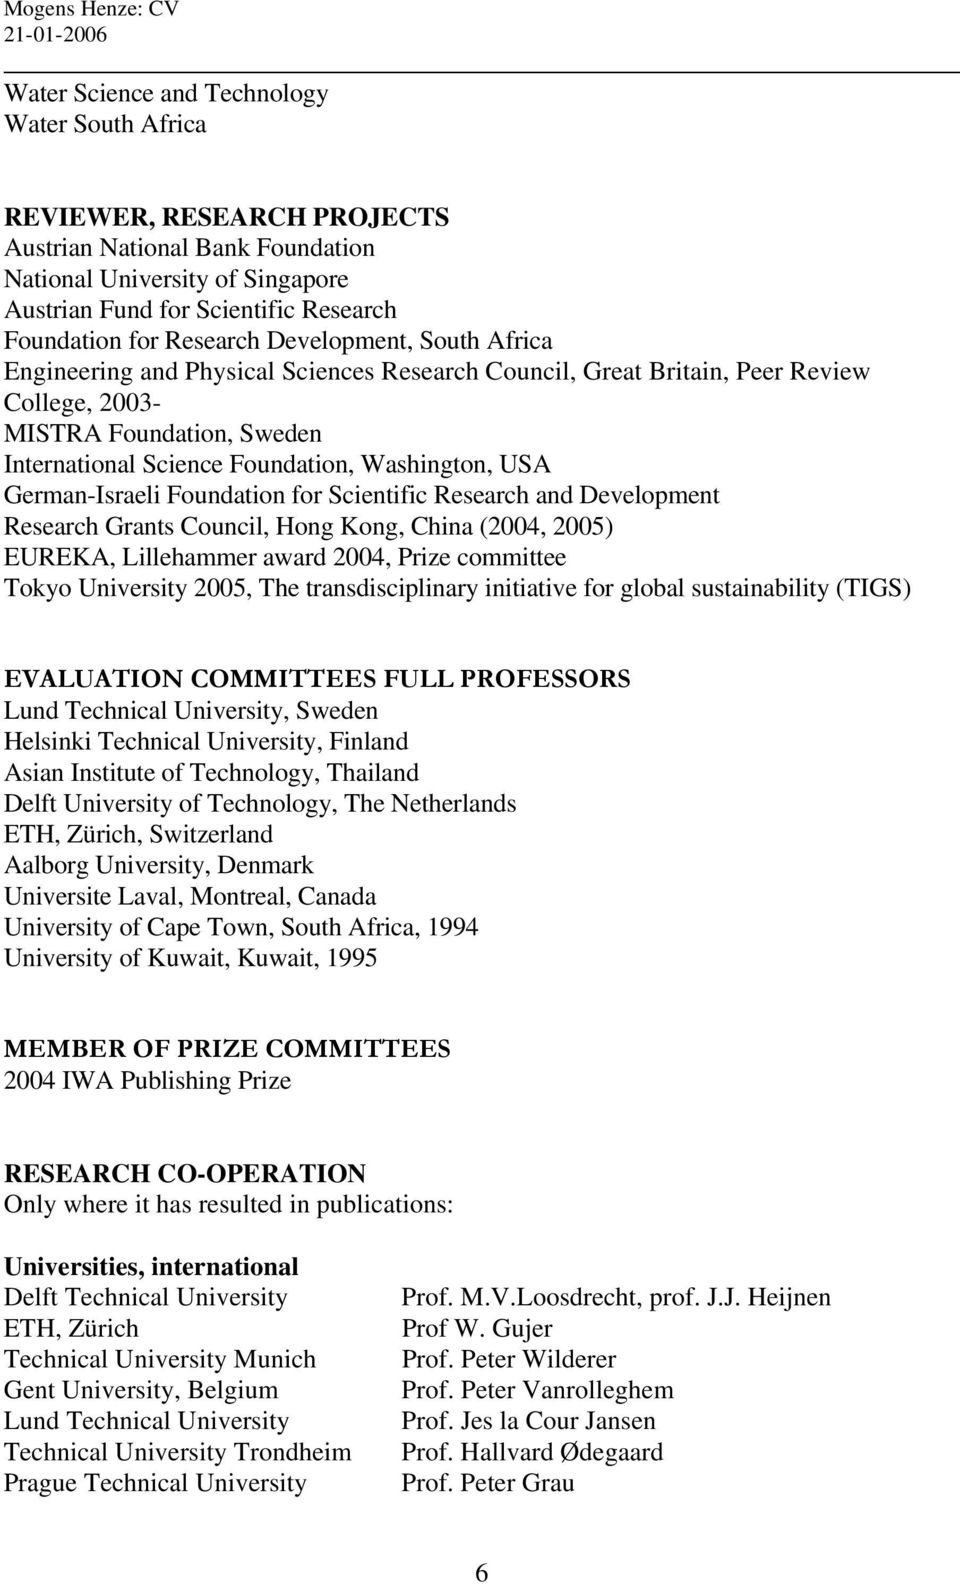 Washington, USA German-Israeli Foundation for Scientific Research and Development Research Grants Council, Hong Kong, China (2004, 2005) EUREKA, Lillehammer award 2004, Prize committee Tokyo